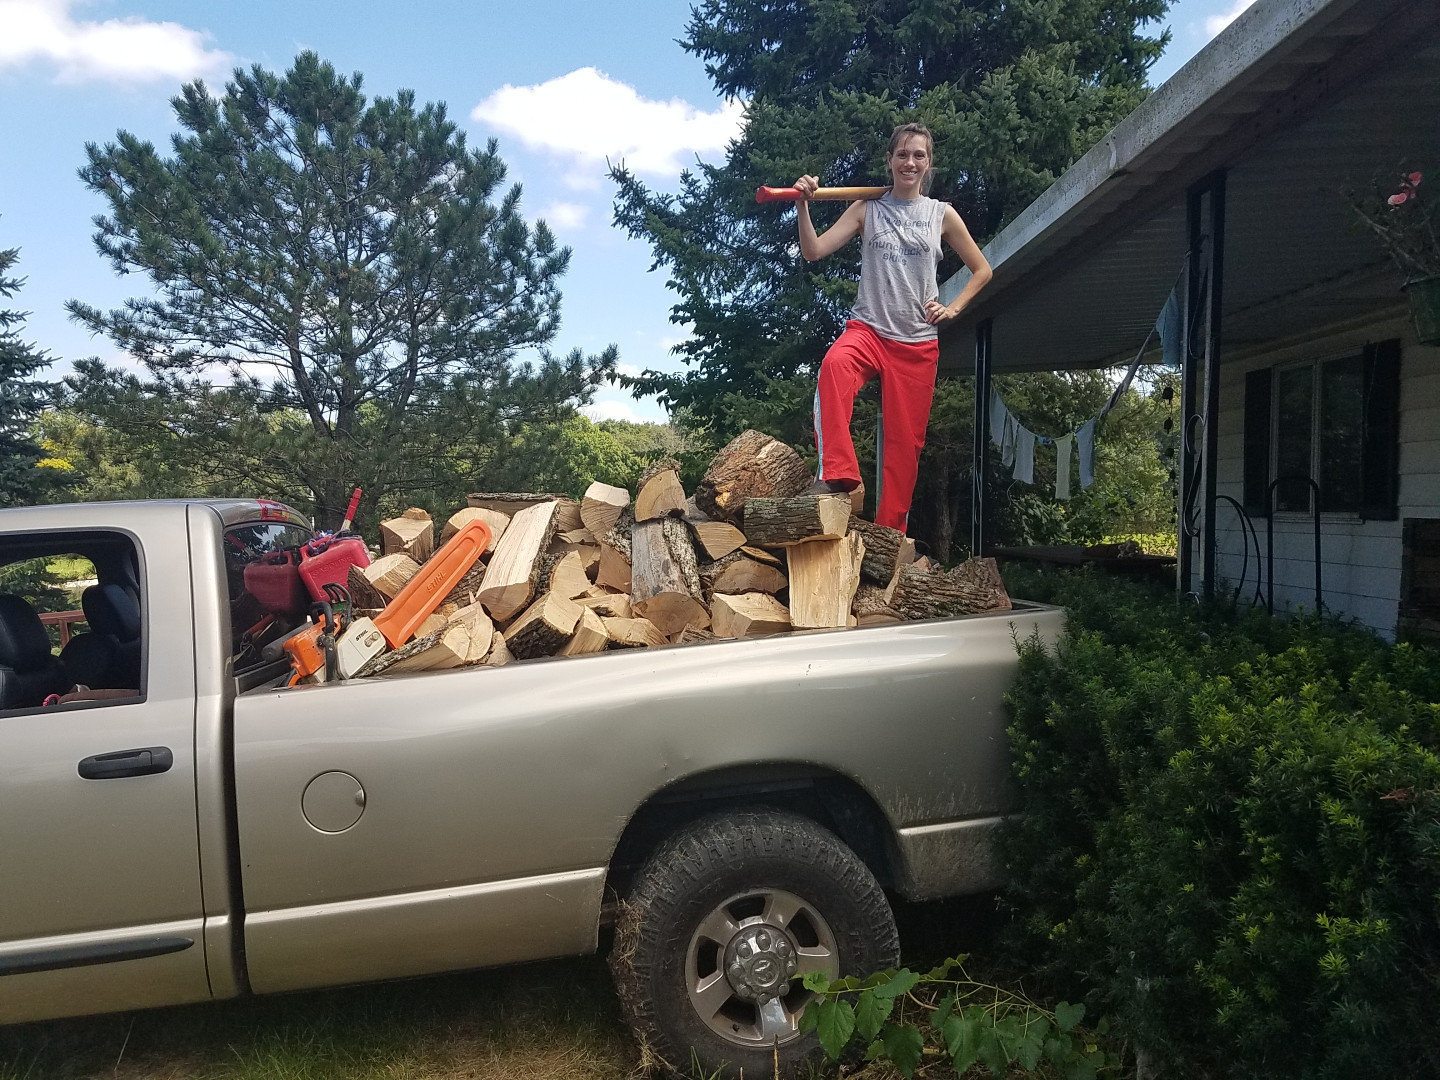 Ermma with a victorious load of firewood